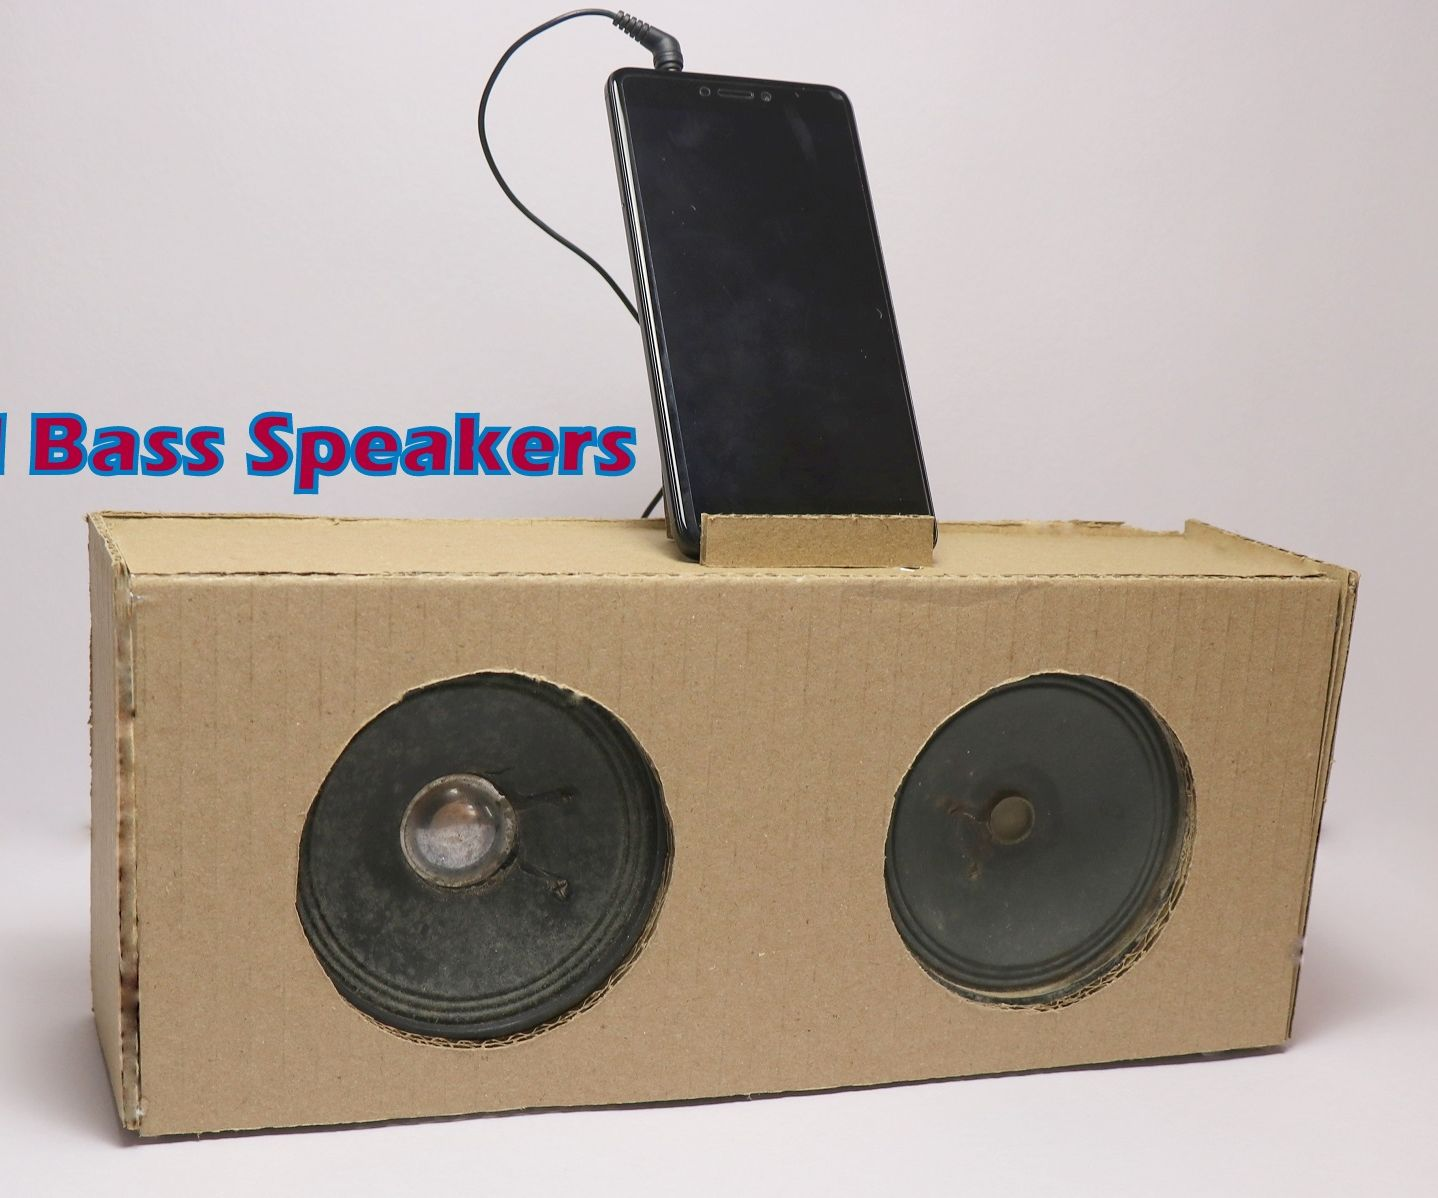 DIY External Bass Speakers for Mobile Phones and Laptops | Recycle Ideas